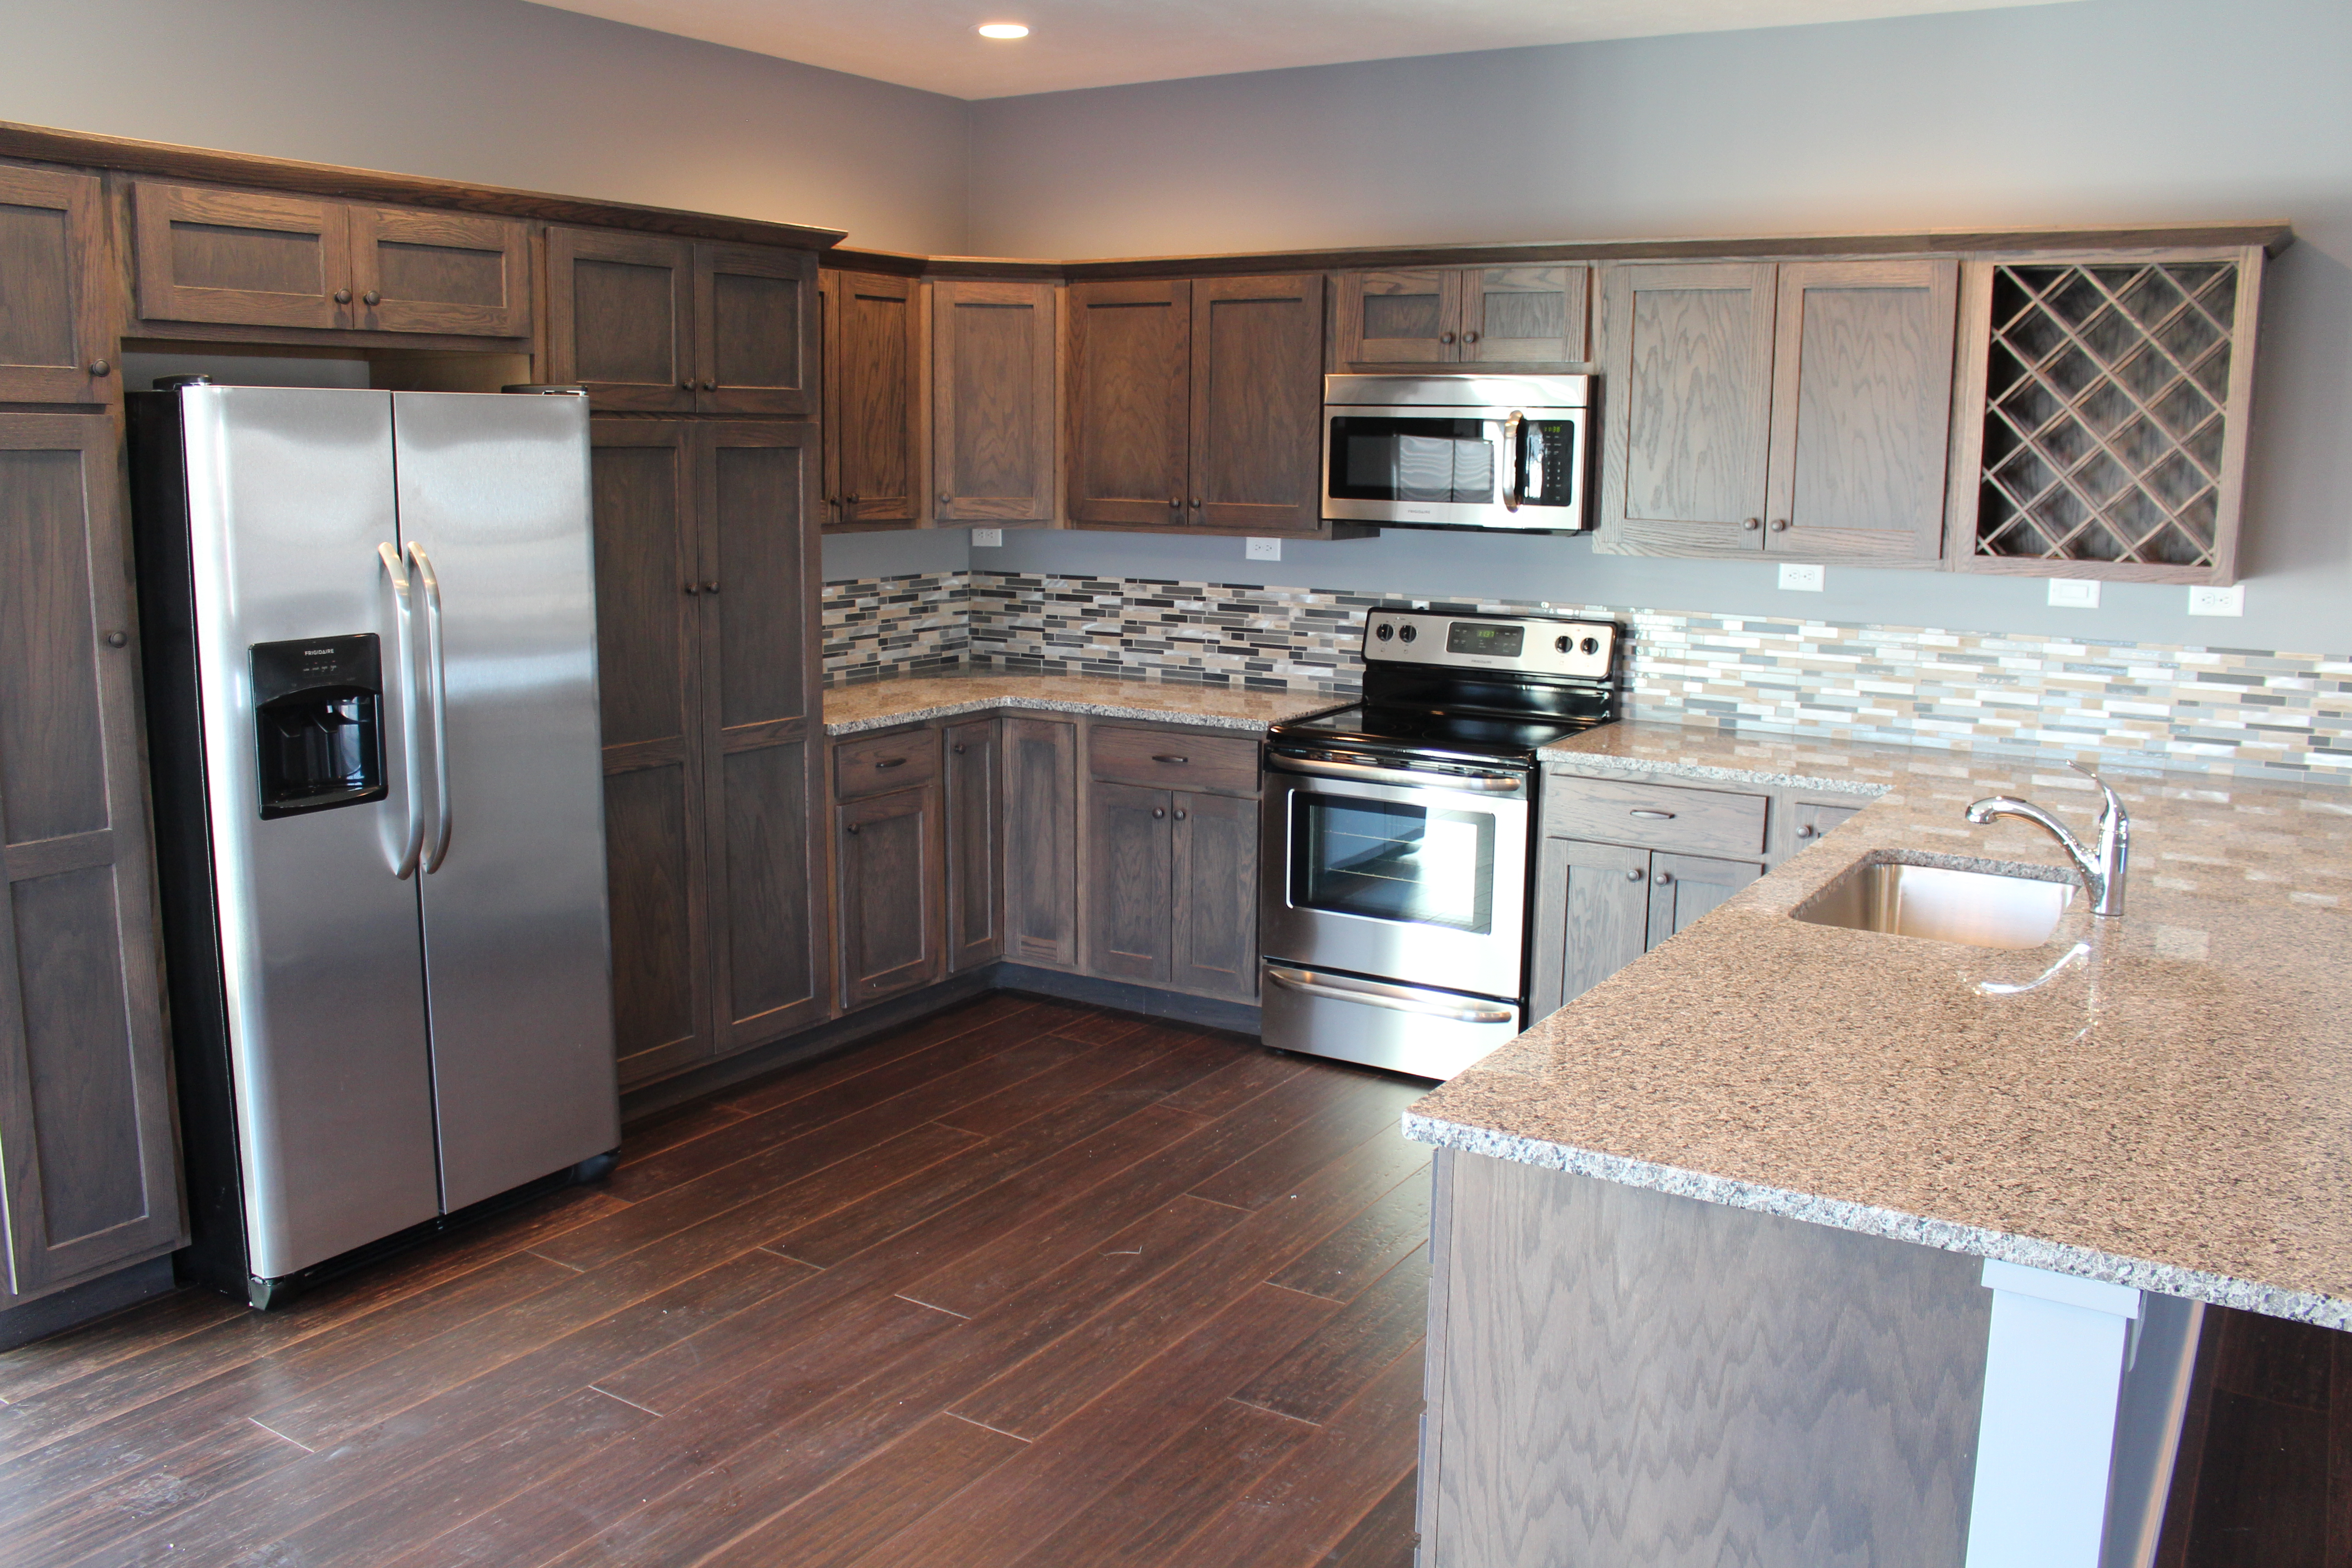 100 kitchen cabinets lincoln ne nebraska kitchen for Bath remodel lincoln ne